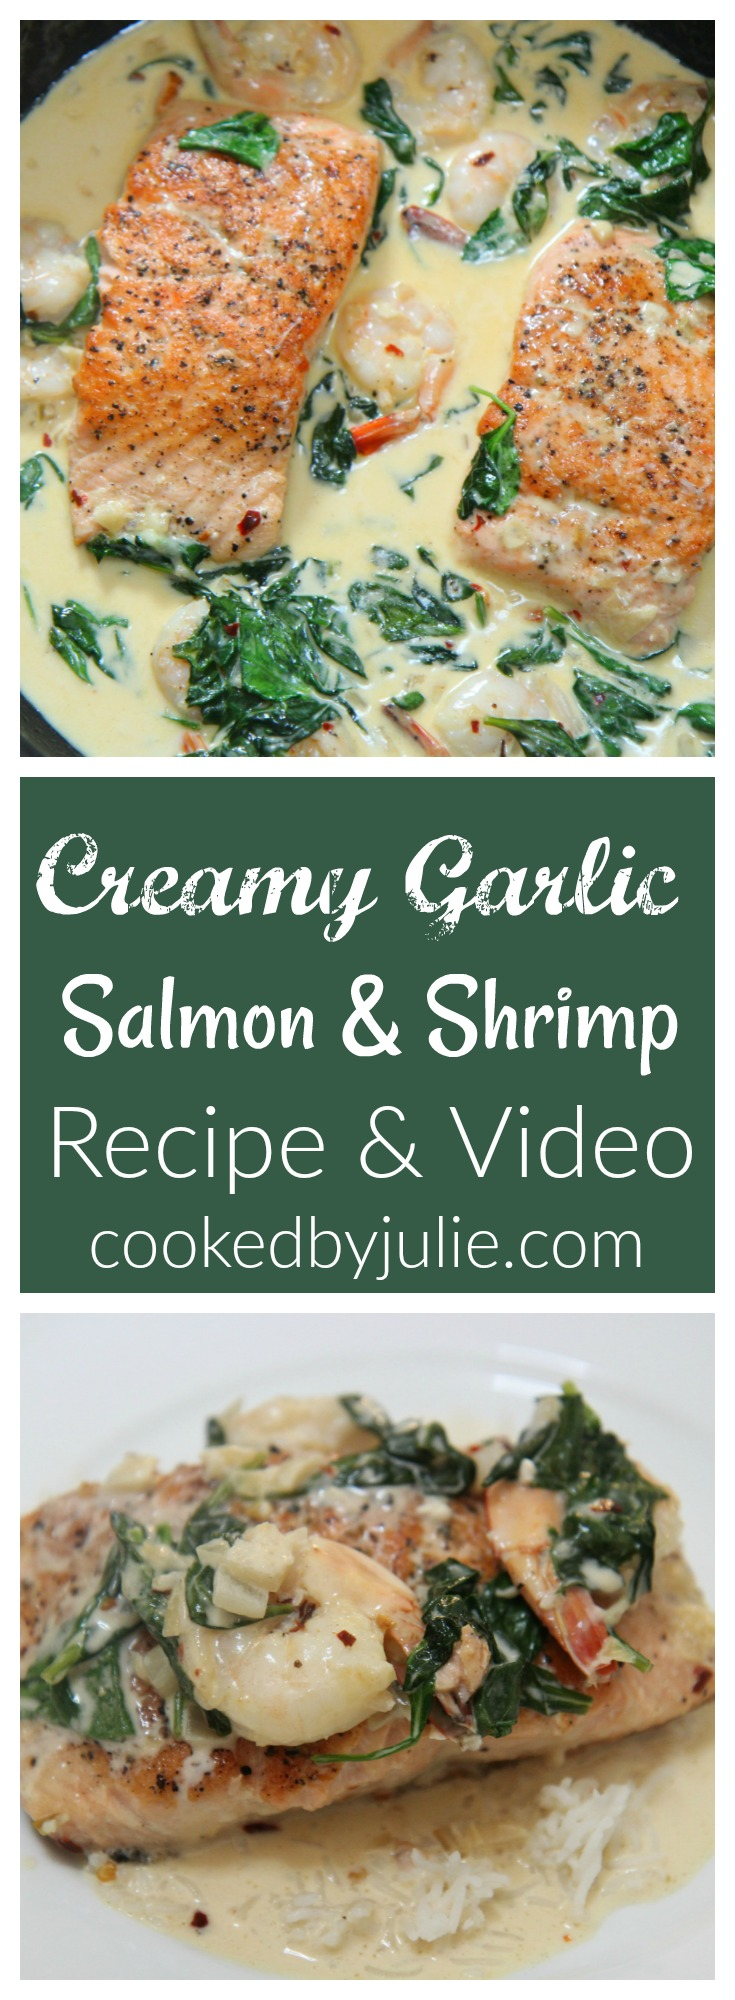 Learn how to make this creamy garlic salmon ad Shrimp through the video posted below. This is a great healthy dinner option.